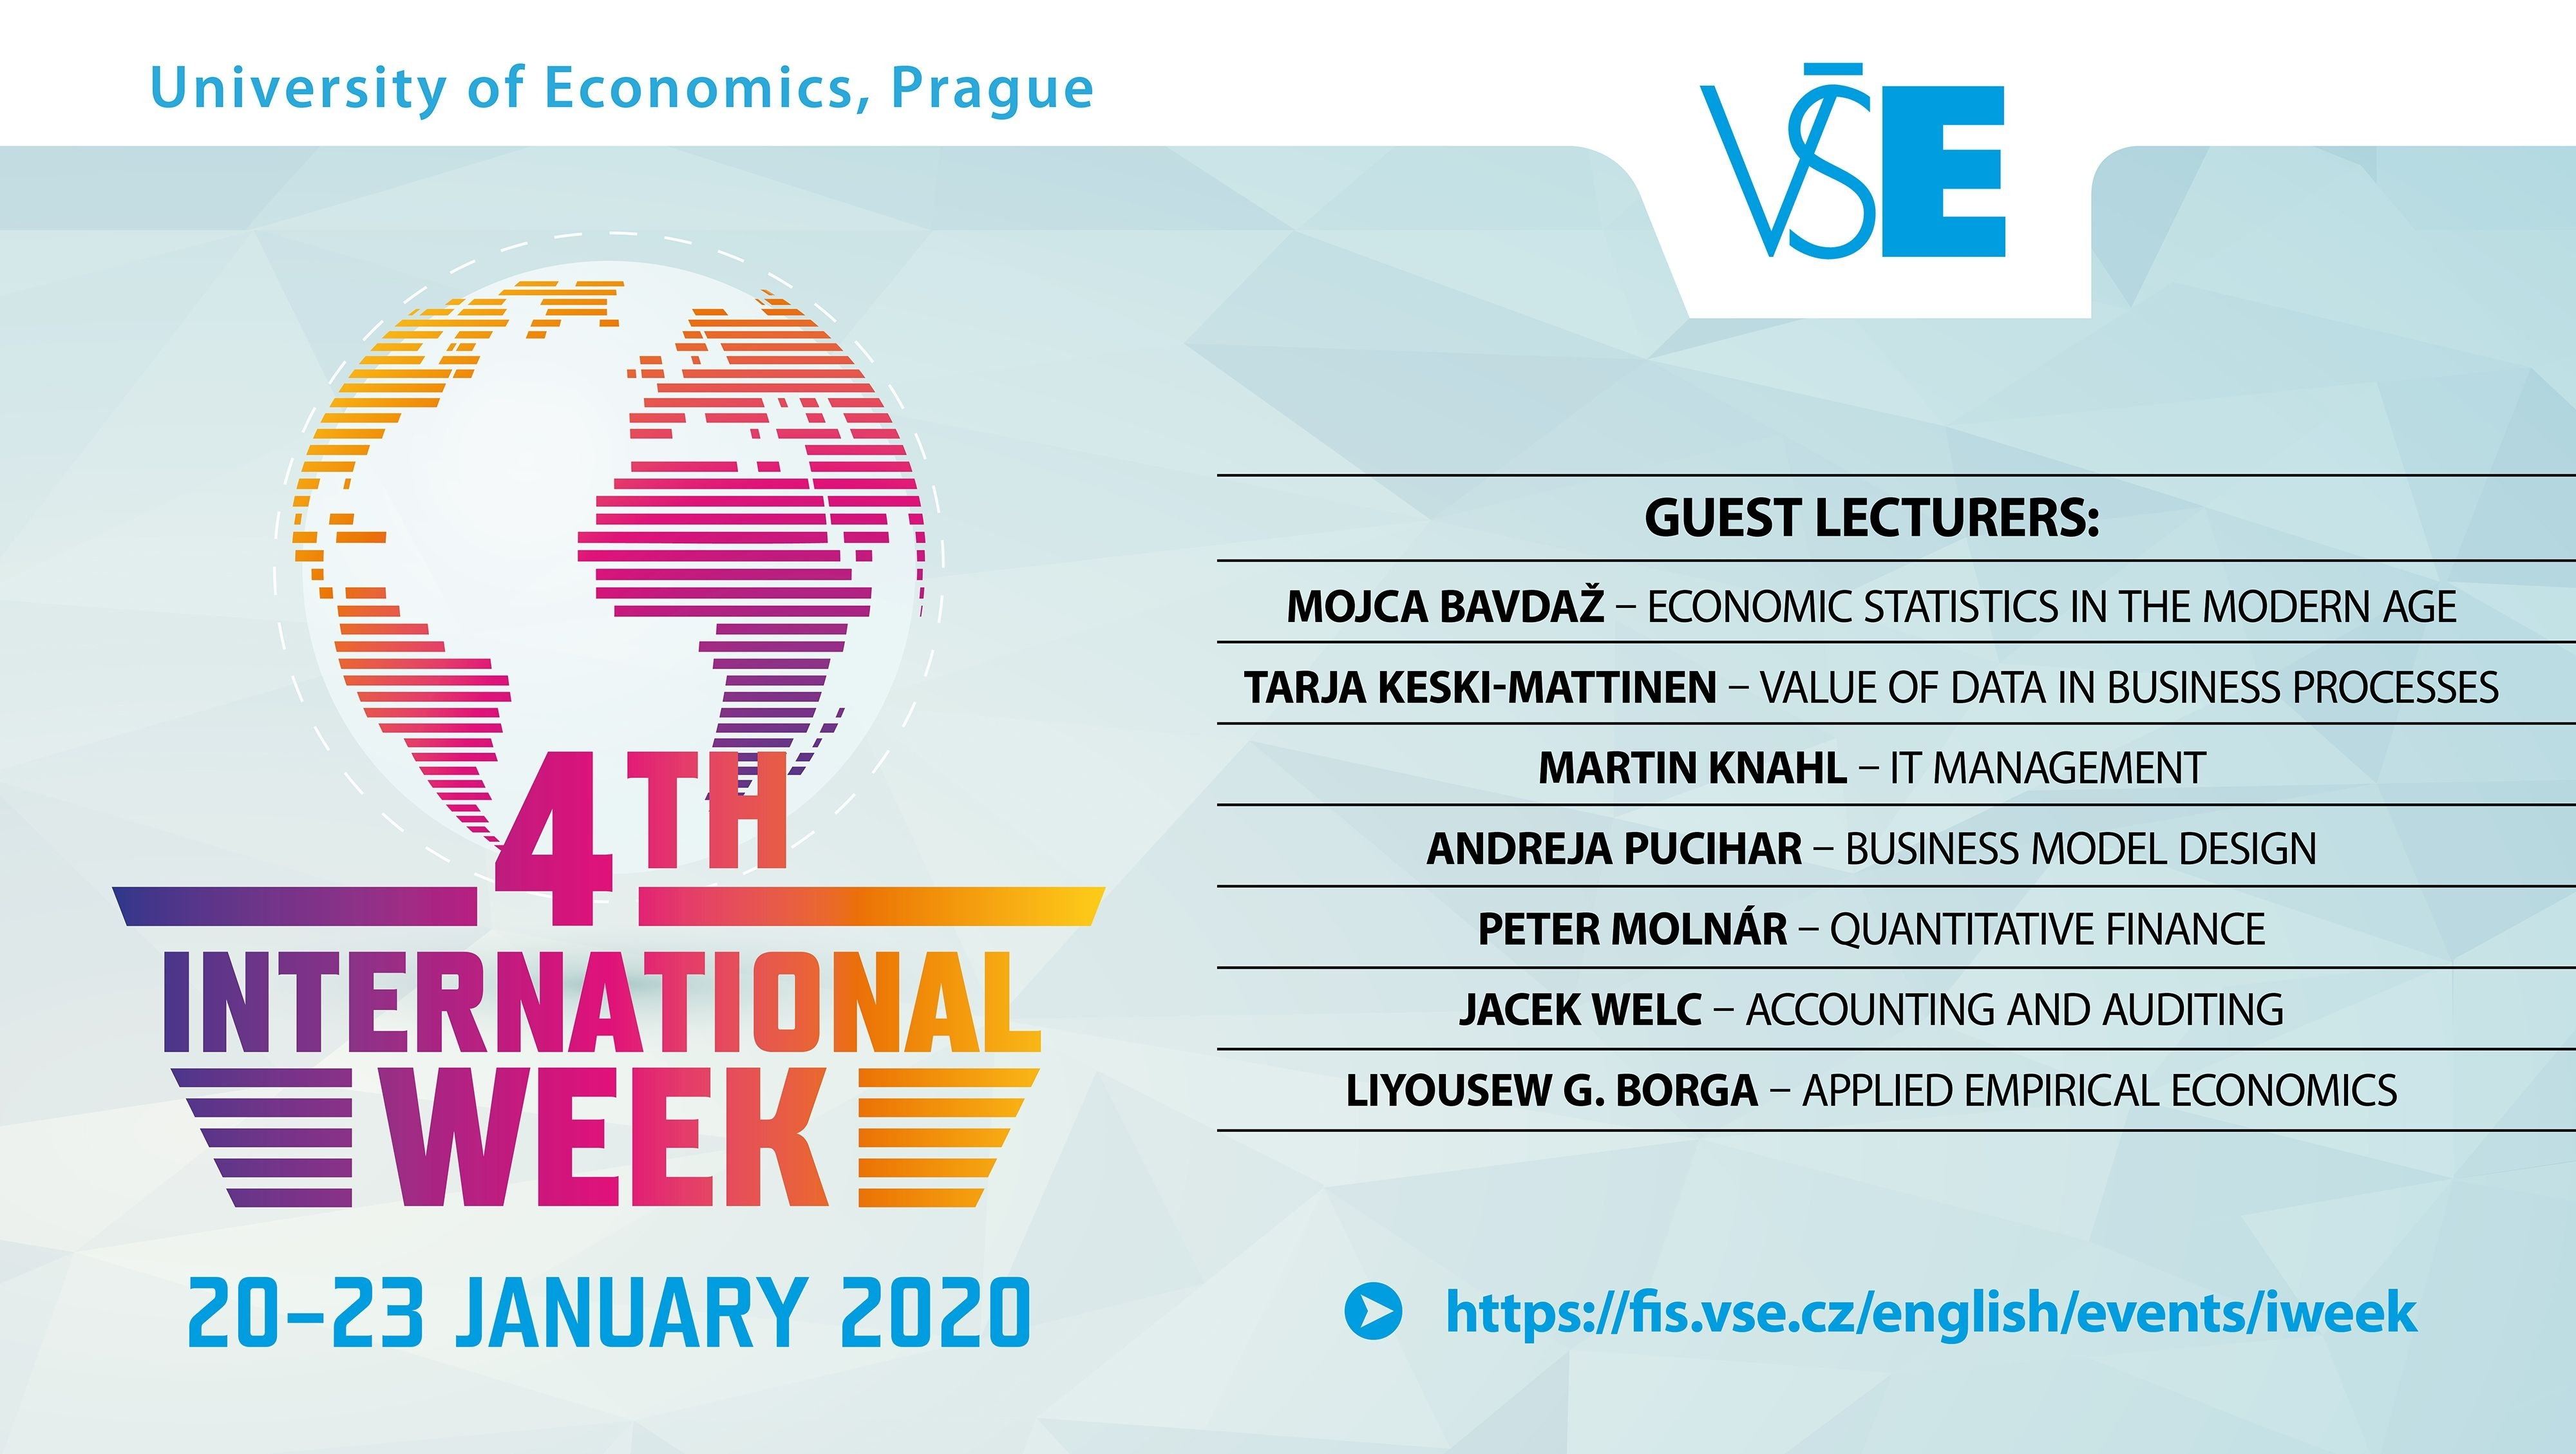 Registrations to International Week courses in January 2020 are OPEN!